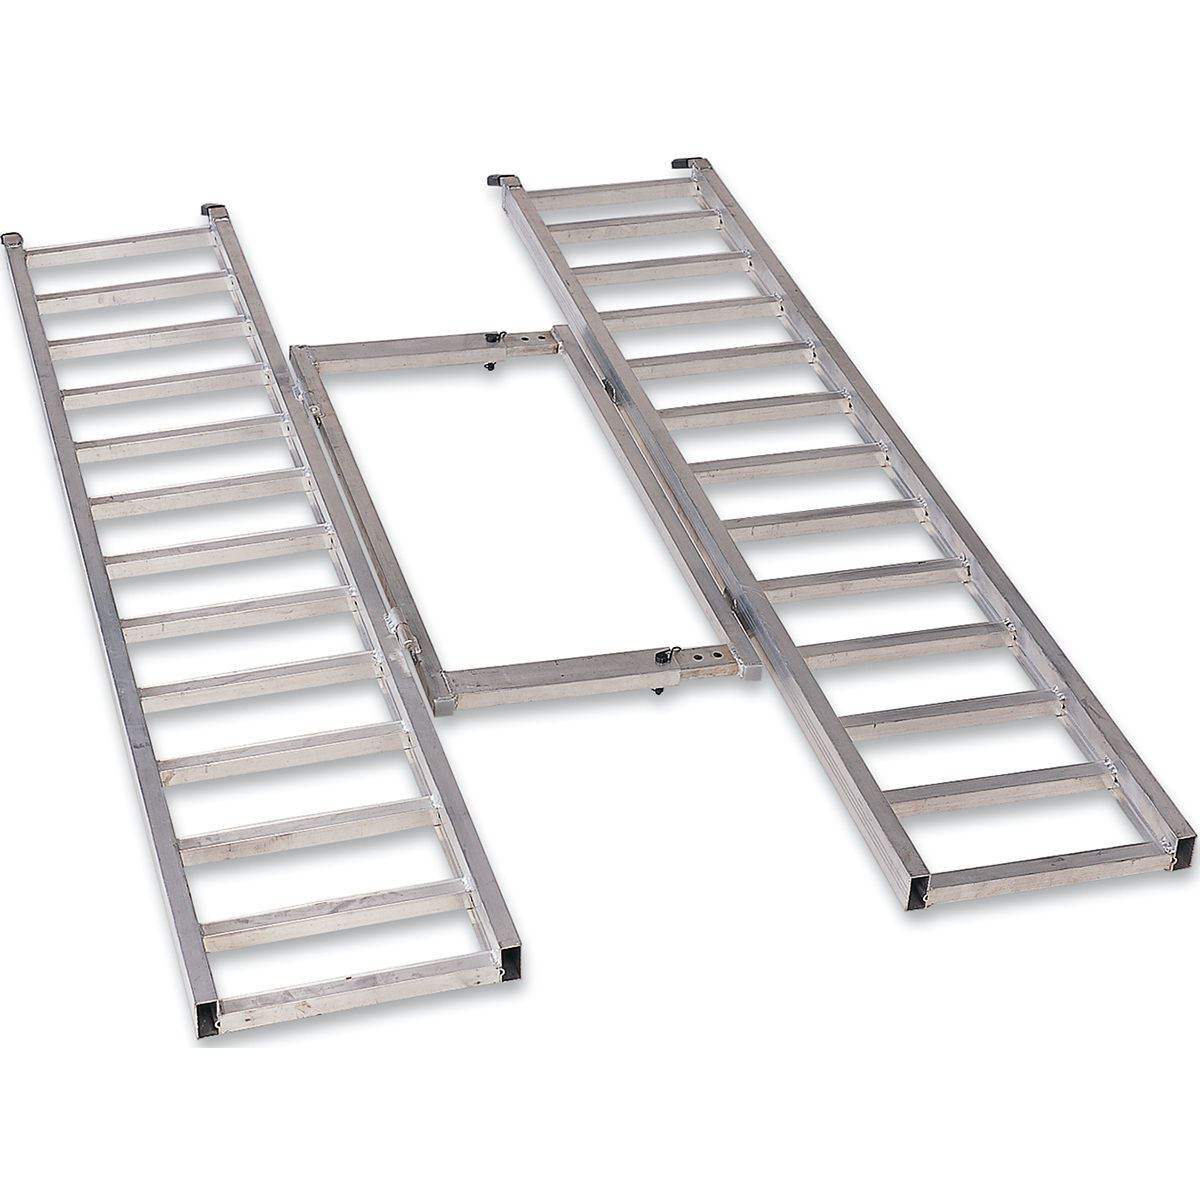 Moose Racing Tri Fold Adjustable Aluminum Ramp